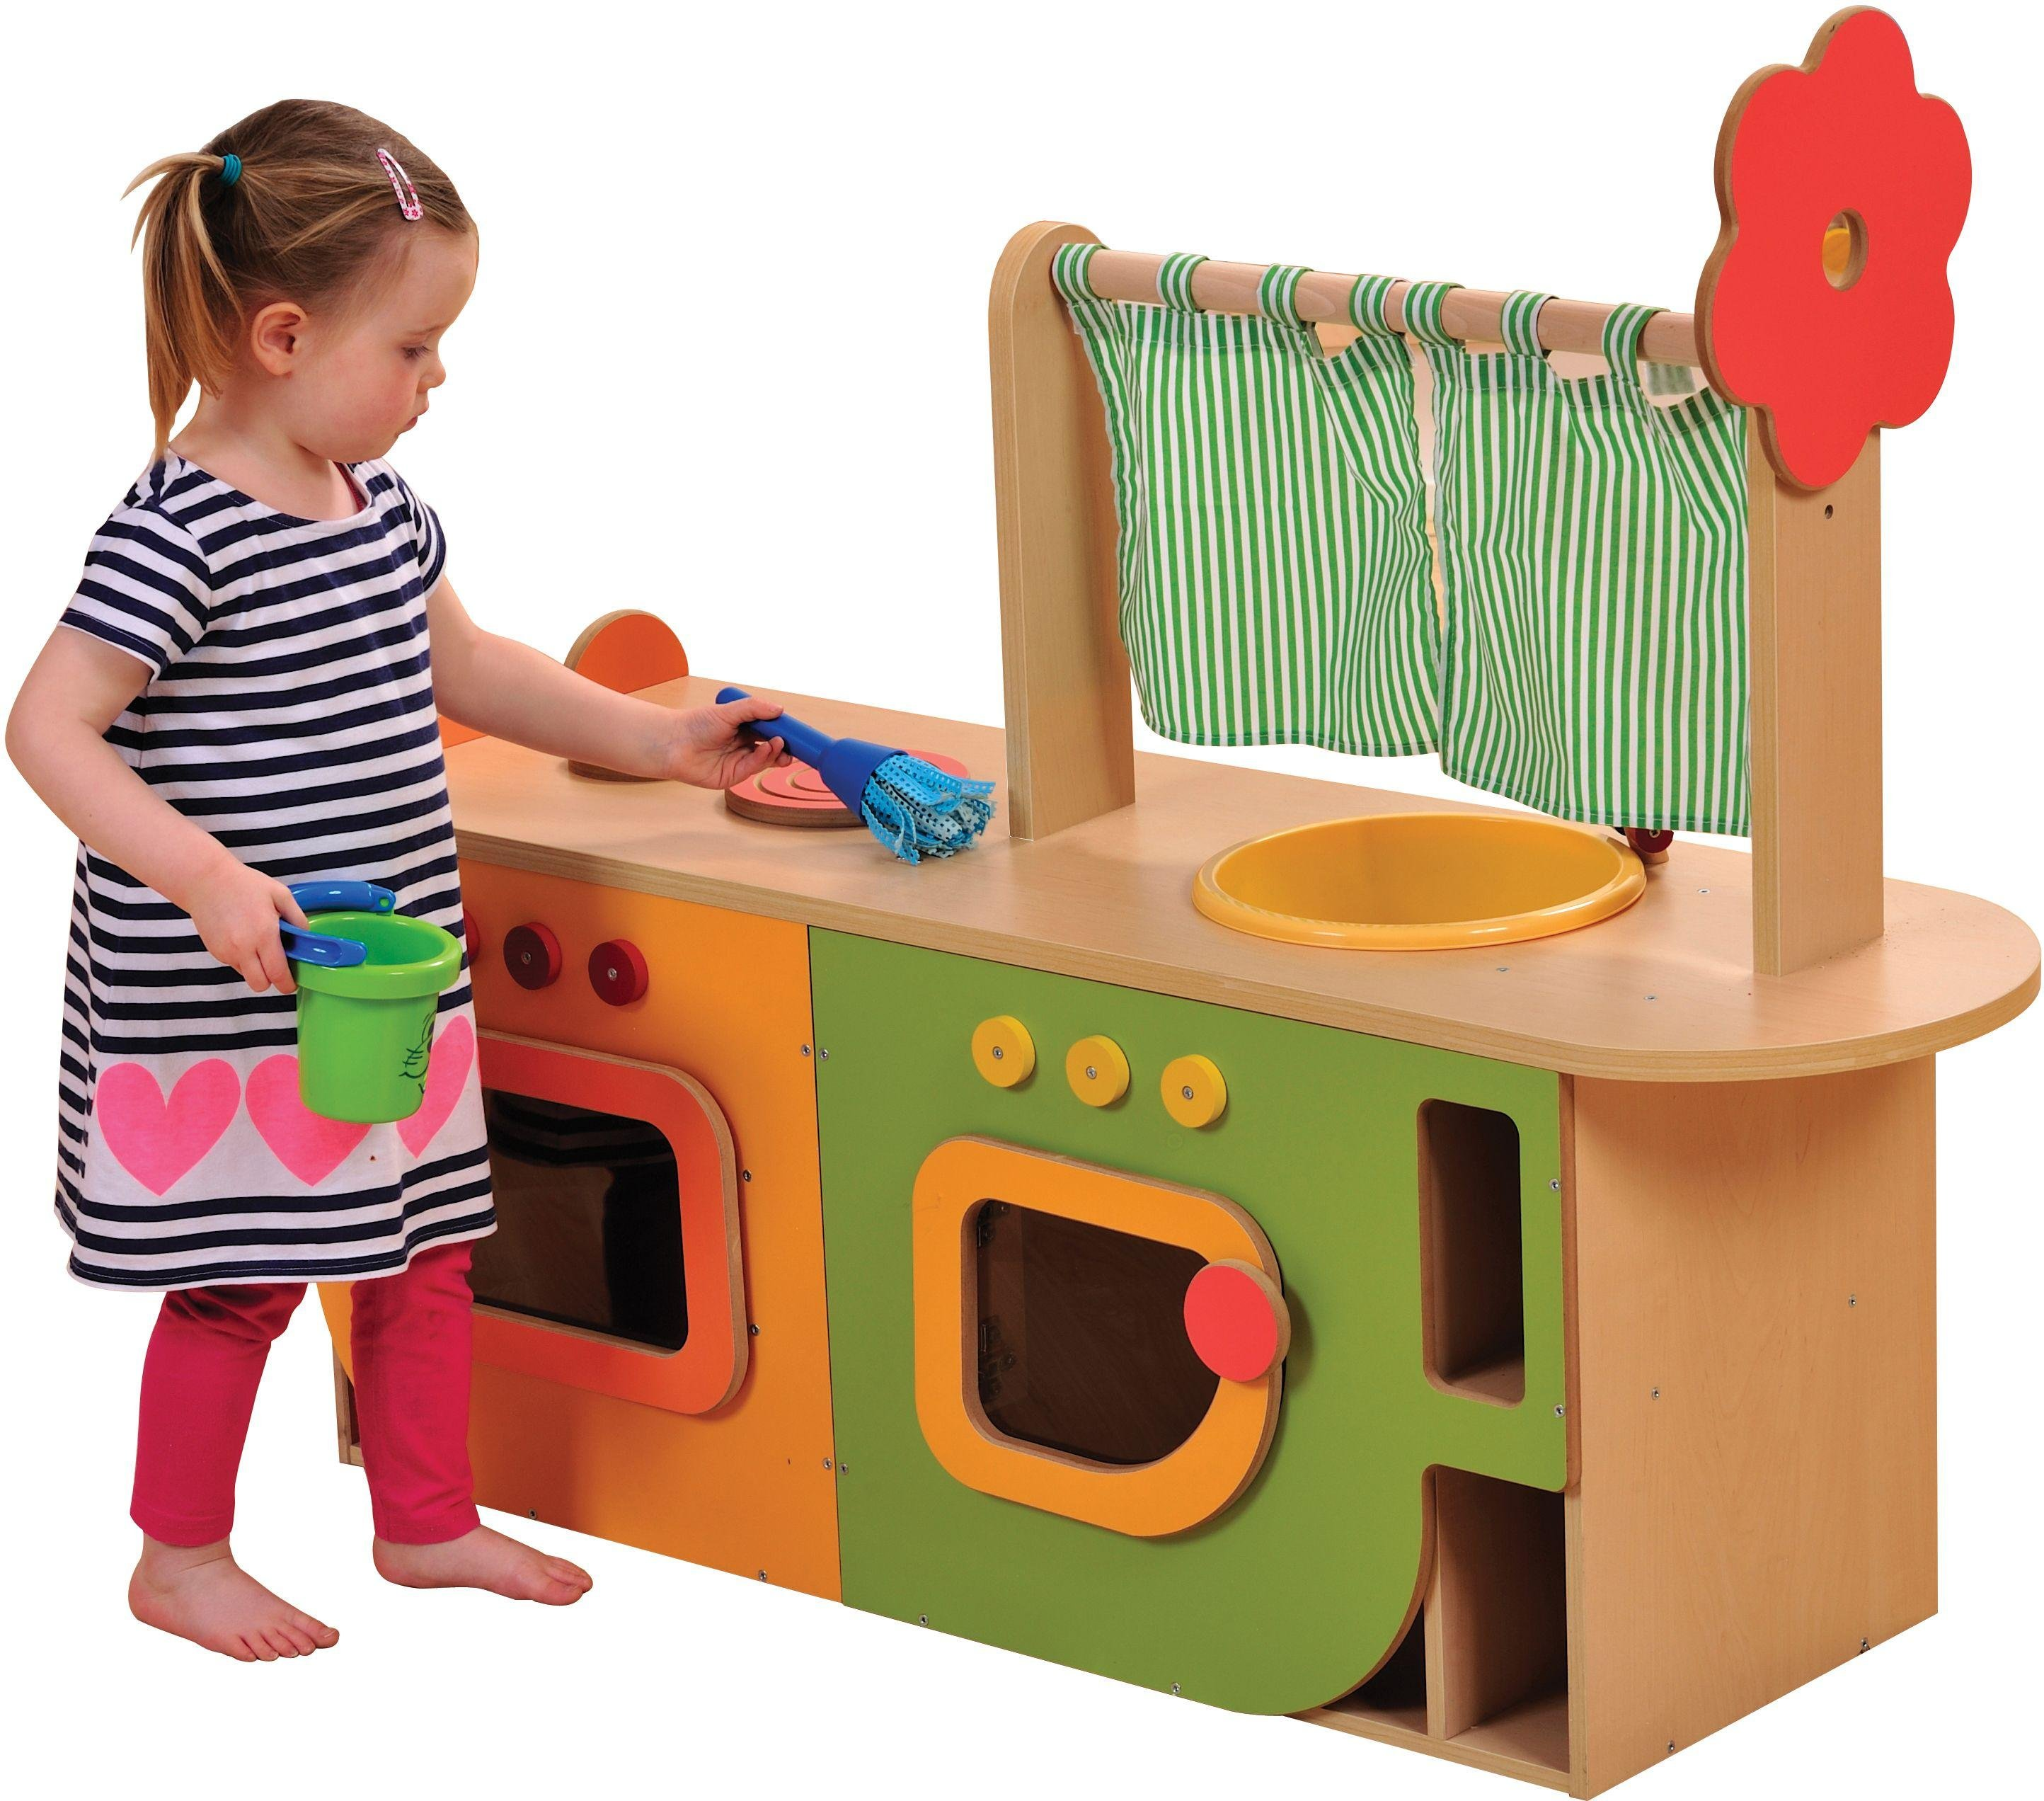 Image of All in One Play Kitchen.